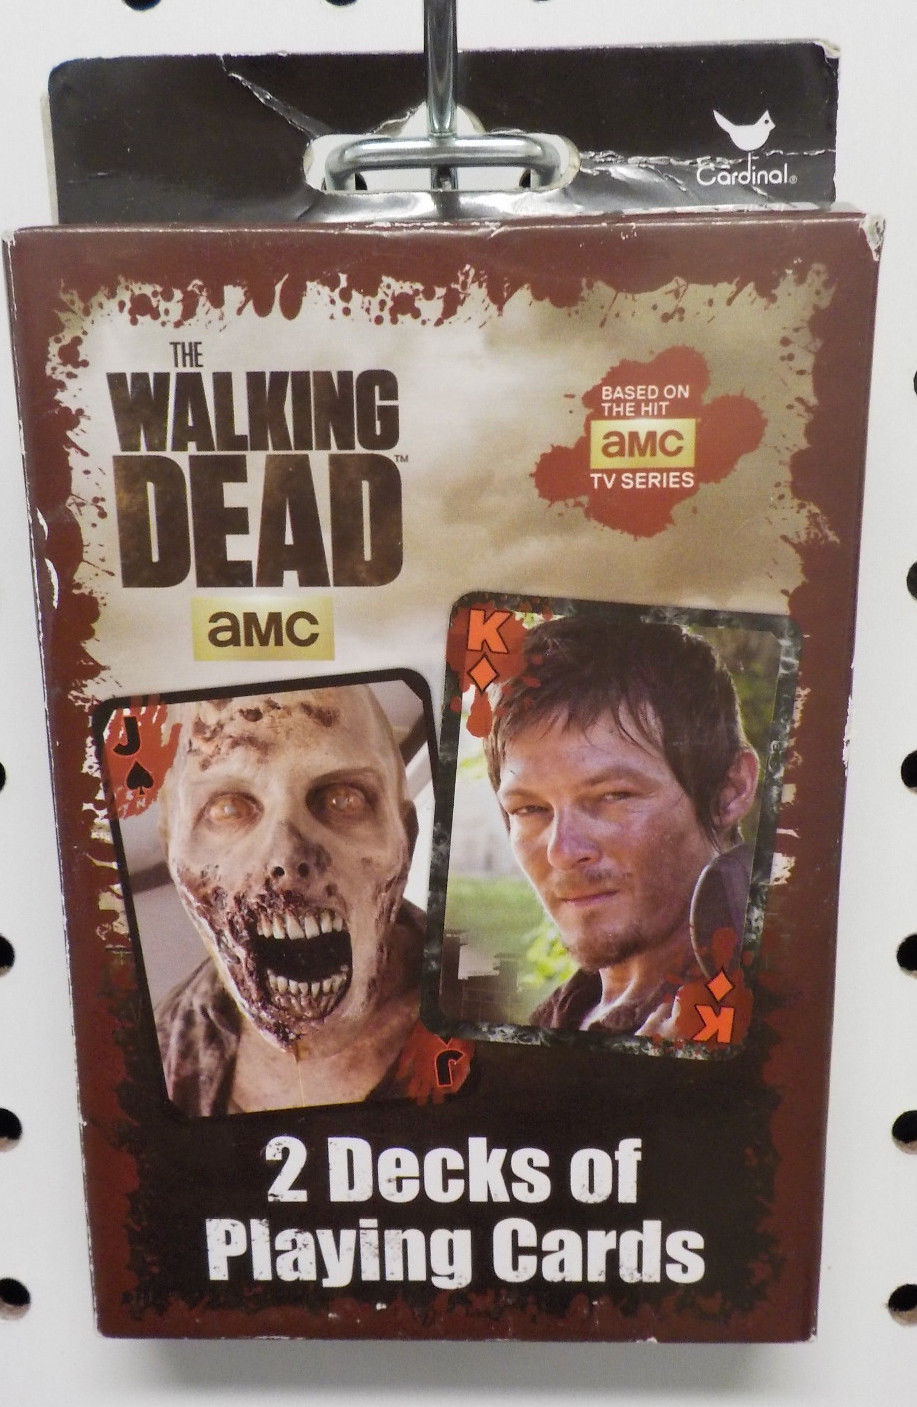 Primary image for The Walking Dead Playing Cards - 2 Decks w/ Dixon Brothers + Zombies (NEW -AMC)